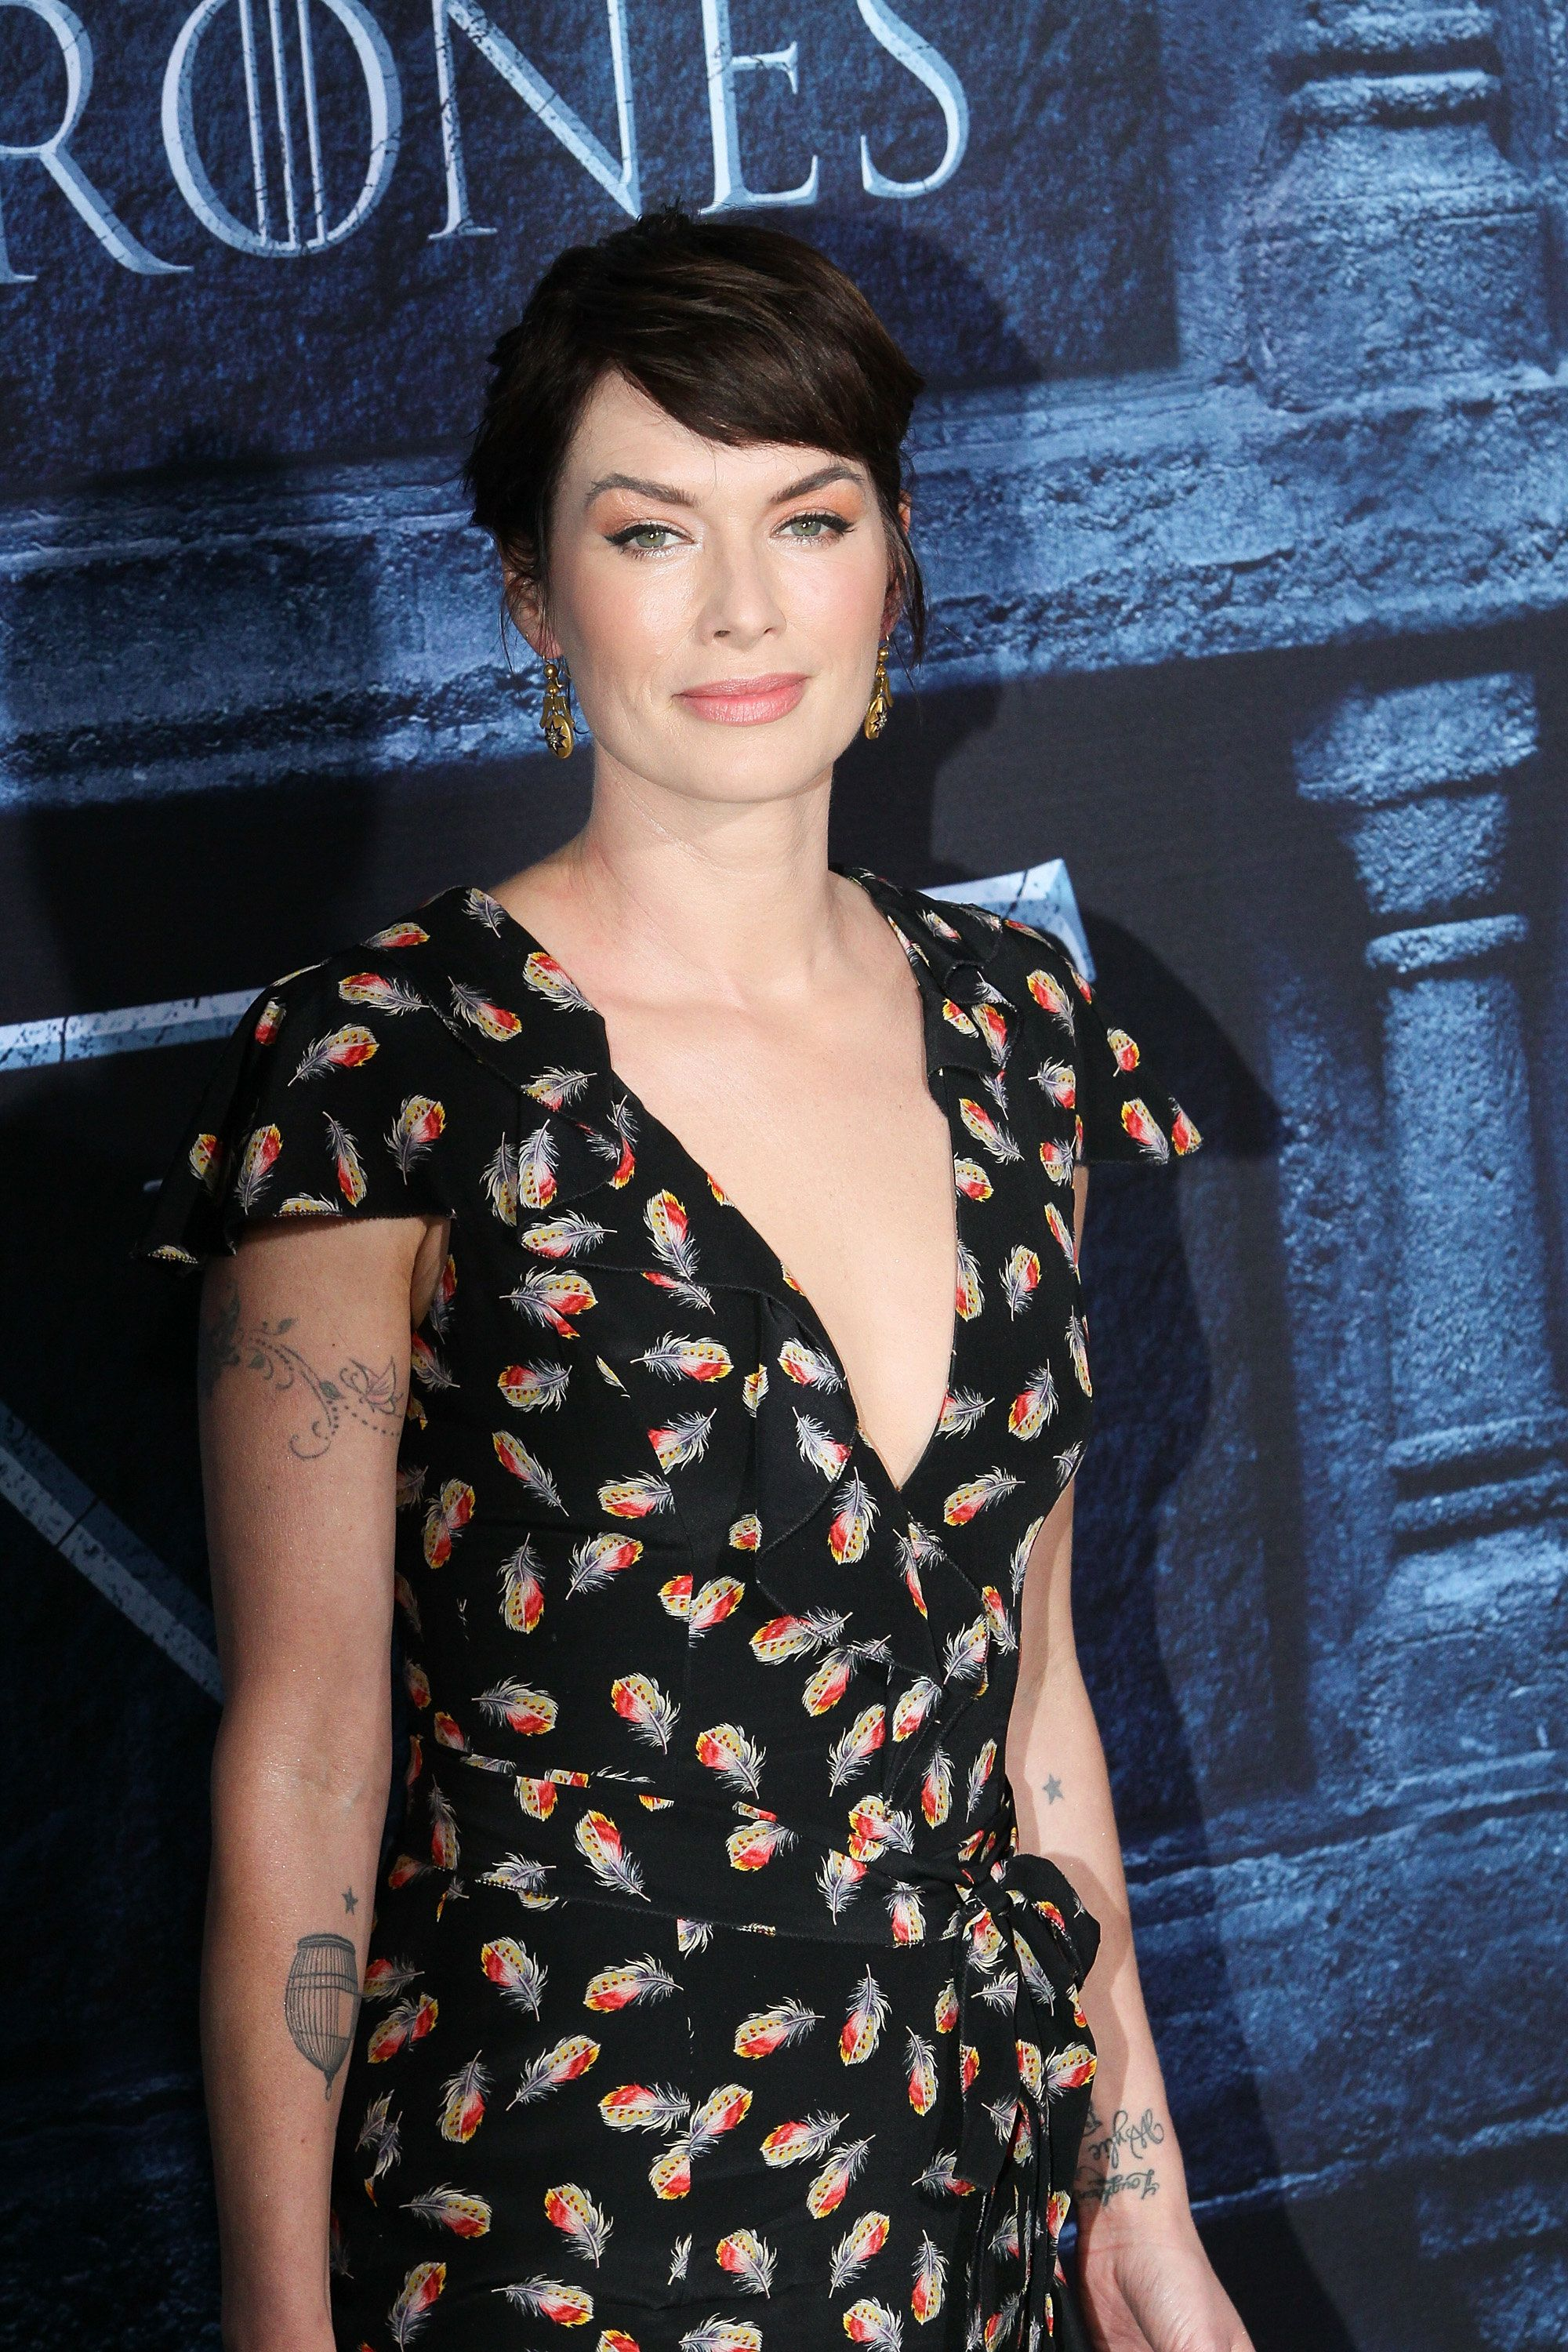 HOLLYWOOD, CALIFORNIA - APRIL 10:  Actress Lena Headey arrives at the premiere of HBO's 'Game of Thrones' Season 6 at the TCL Chinese Theatre on April 10, 2016 in Hollywood, California.  (Photo by David Livingston/Getty Images)